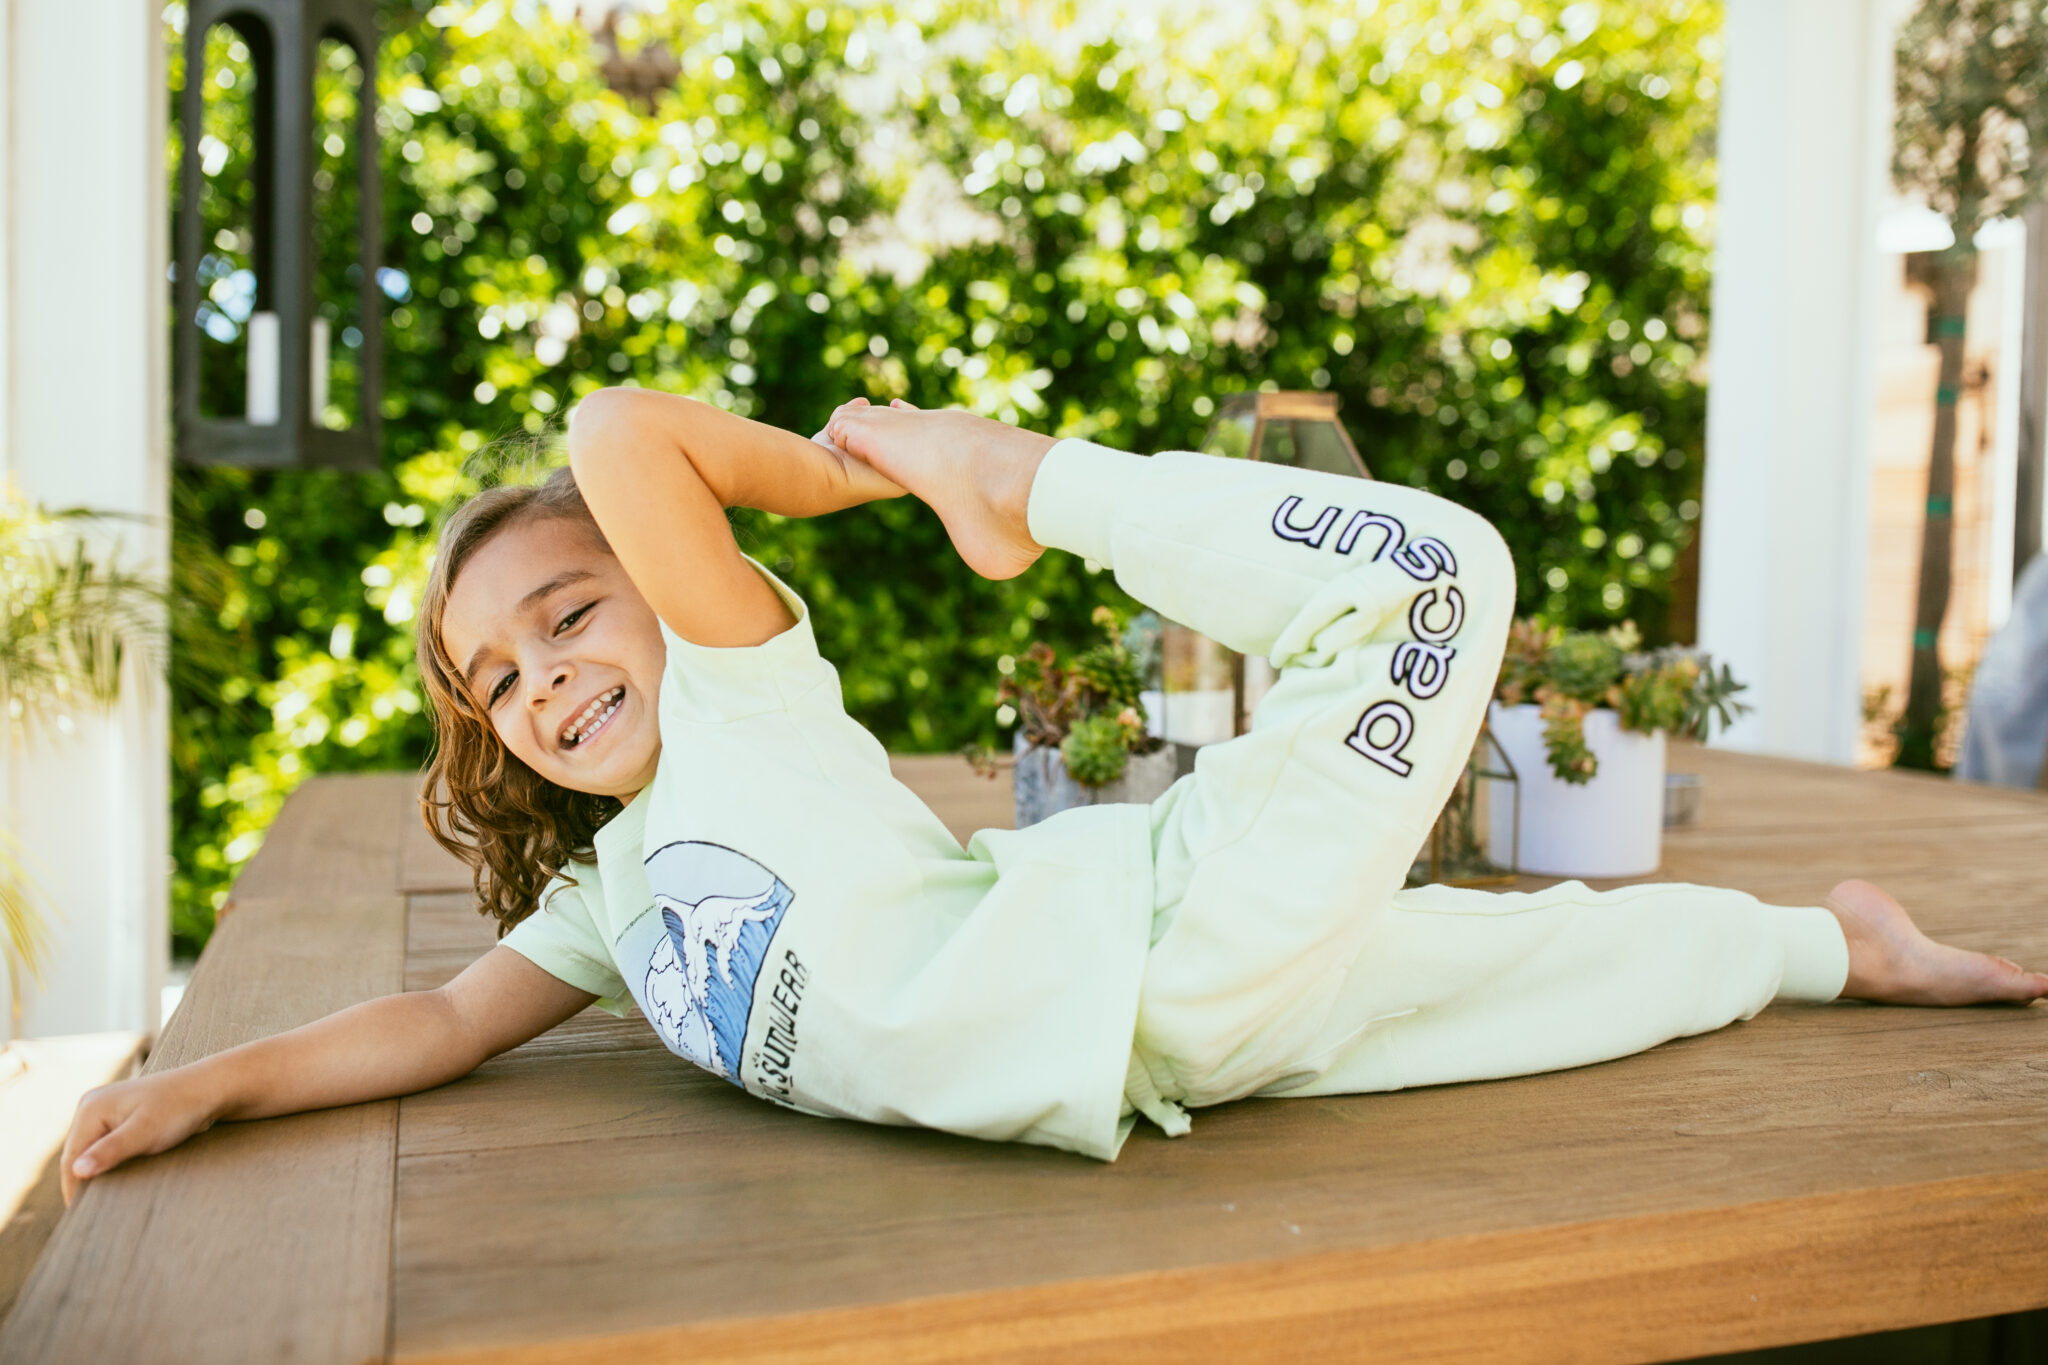 boy stretching on table